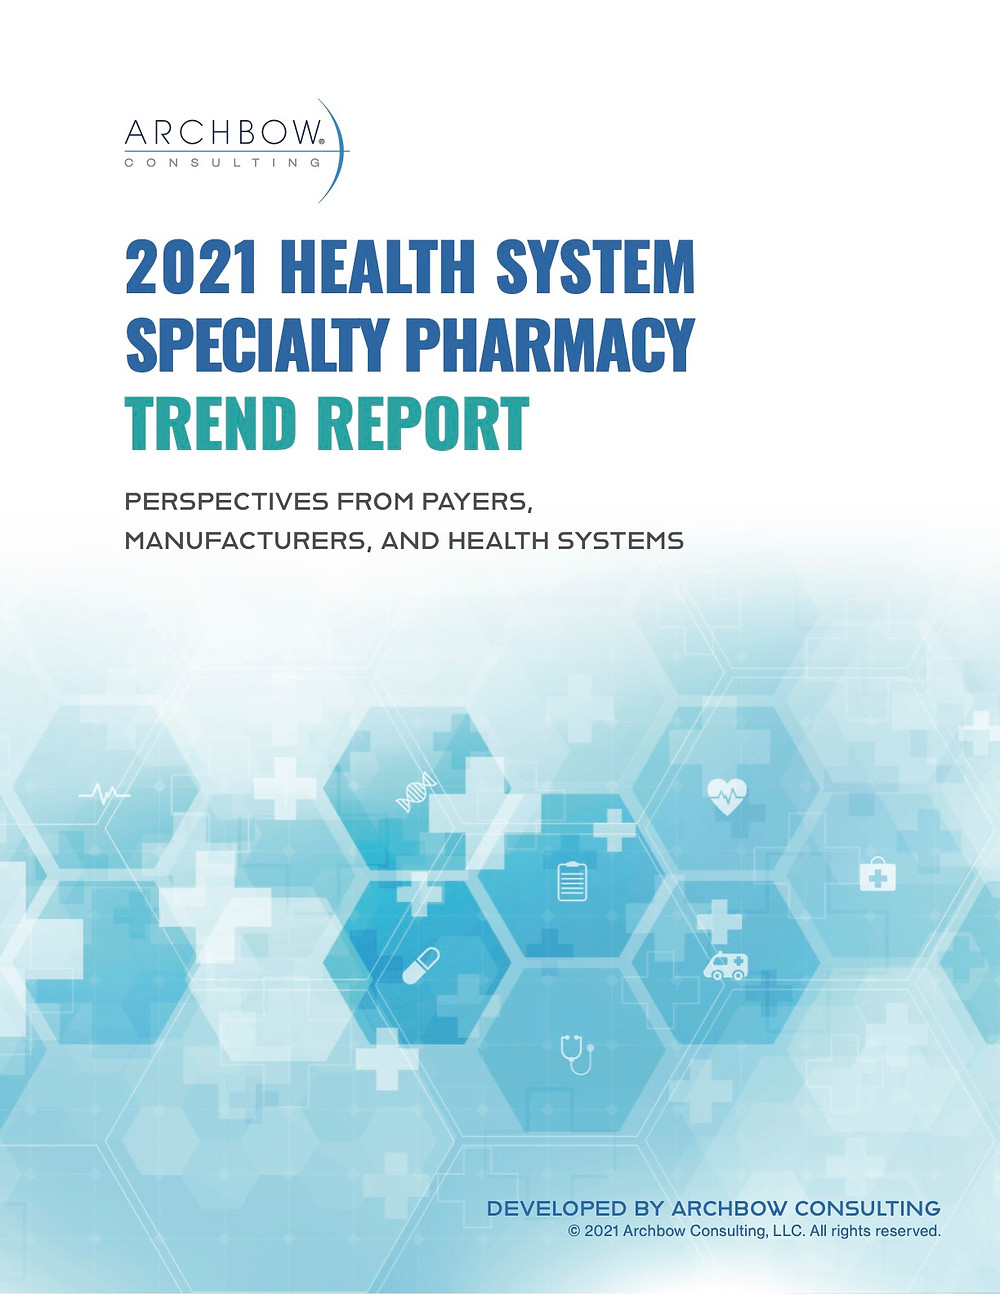 Archbow Consulting | 2021 Health System Specialty Pharmacy Trend Report